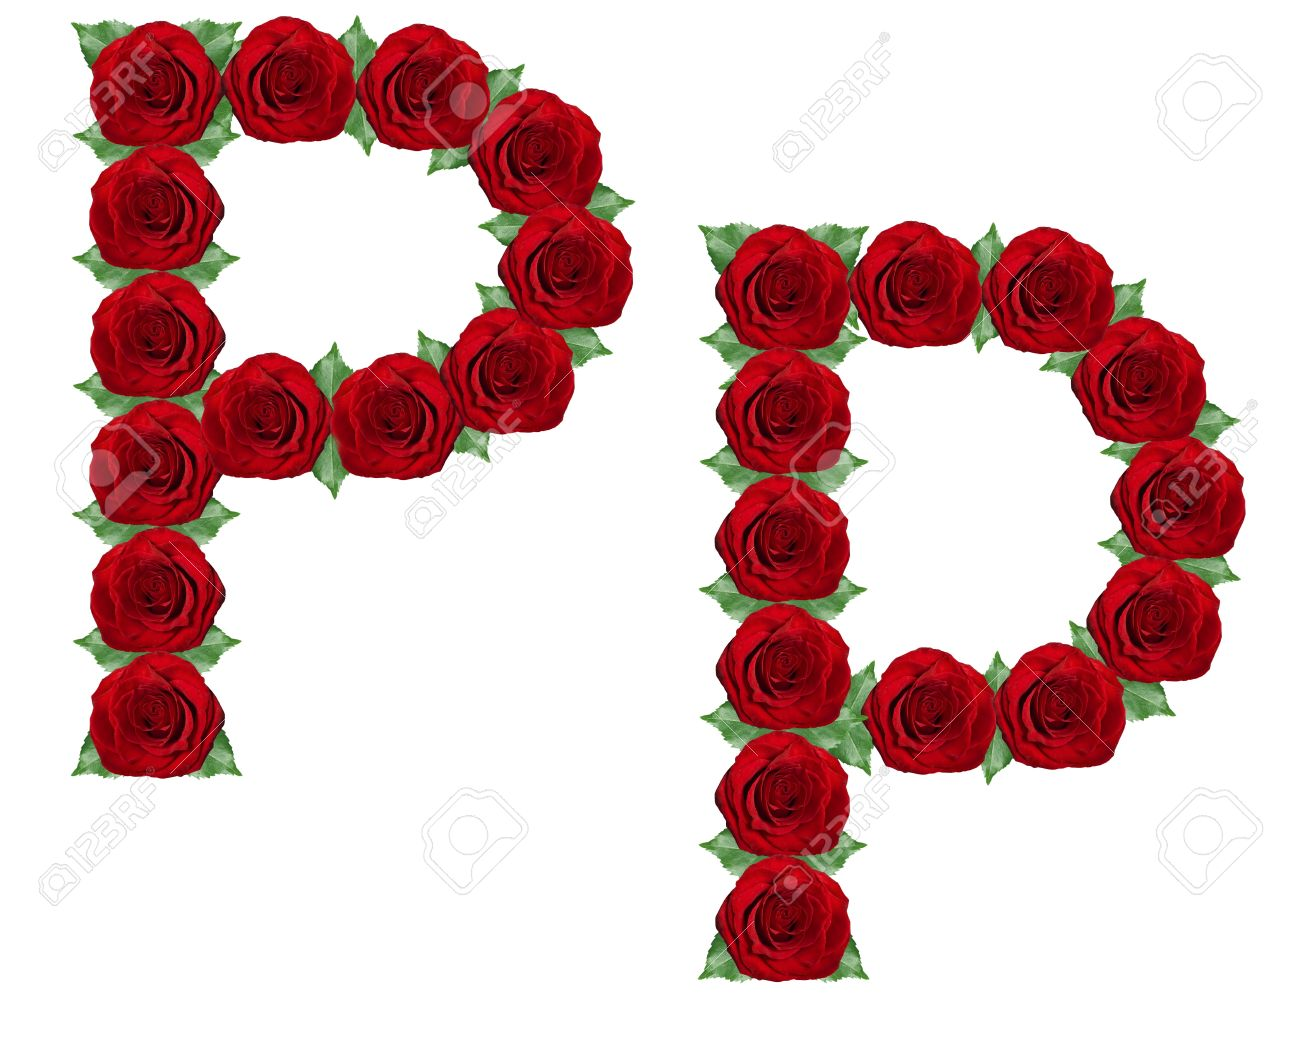 Alphabet Letter P Made From Red Roses And Green Leaves Isolated On A White Background Stock